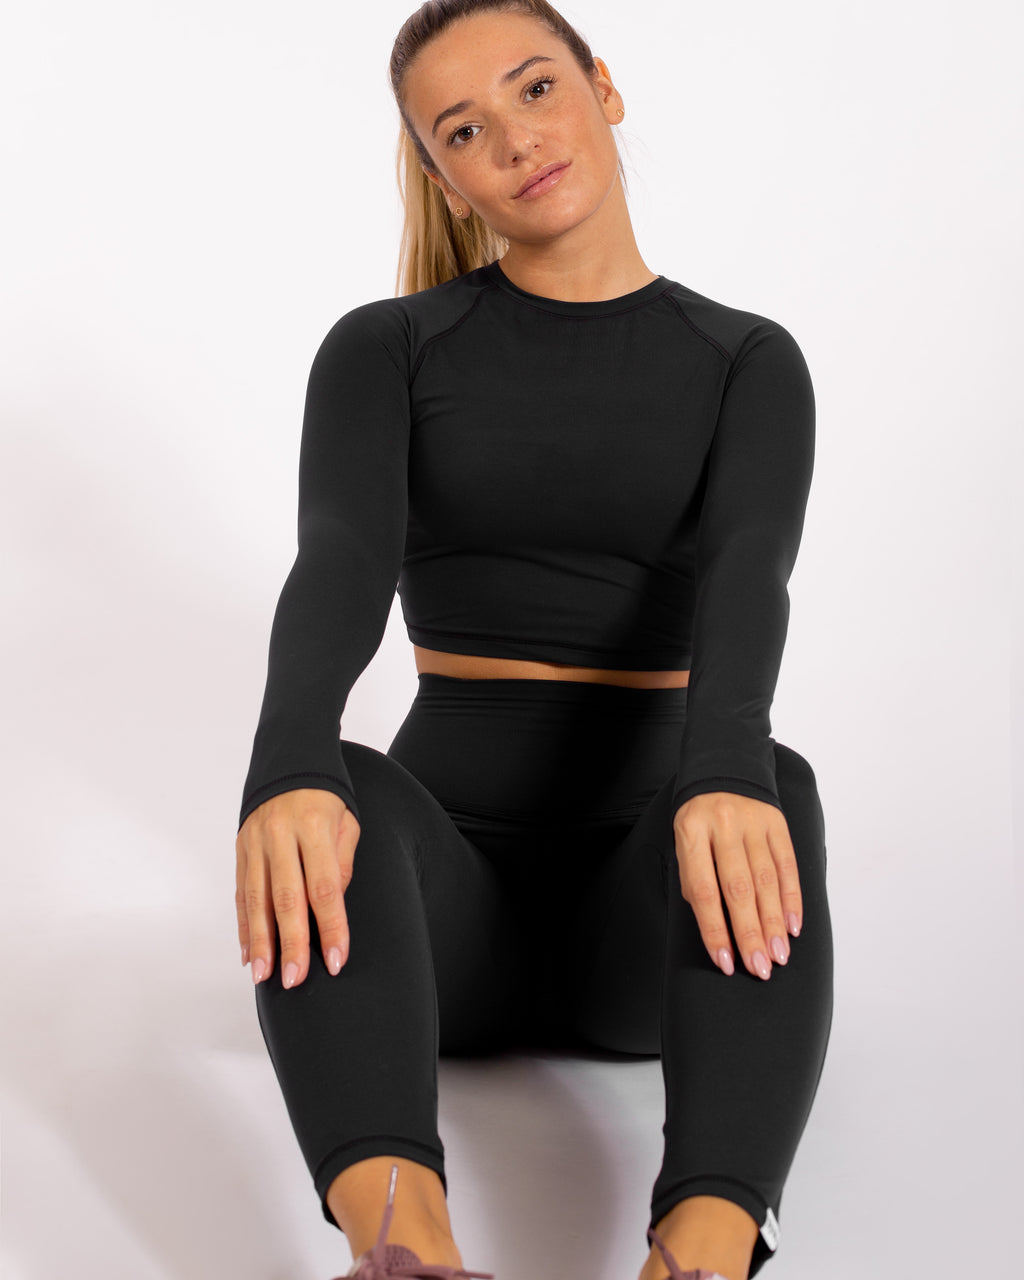 Zen Crop Top - Infinity Black